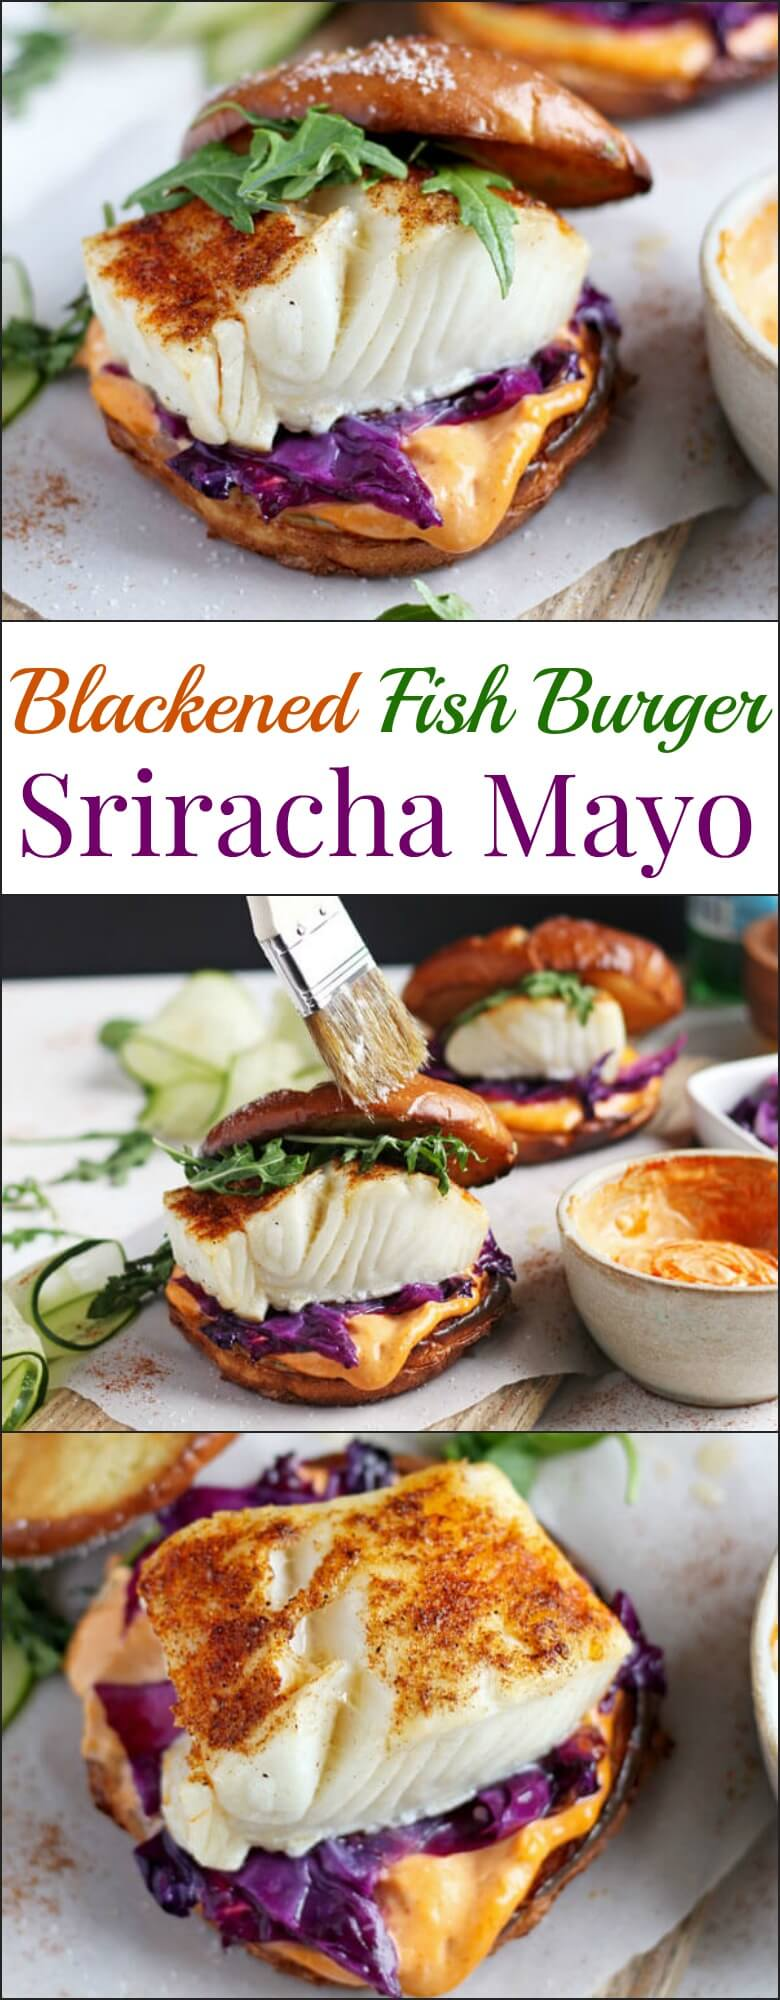 This blackened fish burger + sriracha mayo is a quick and easy weeknight meal that is healthy and bursting with flavor! Ready and on your table in 30 minutes!